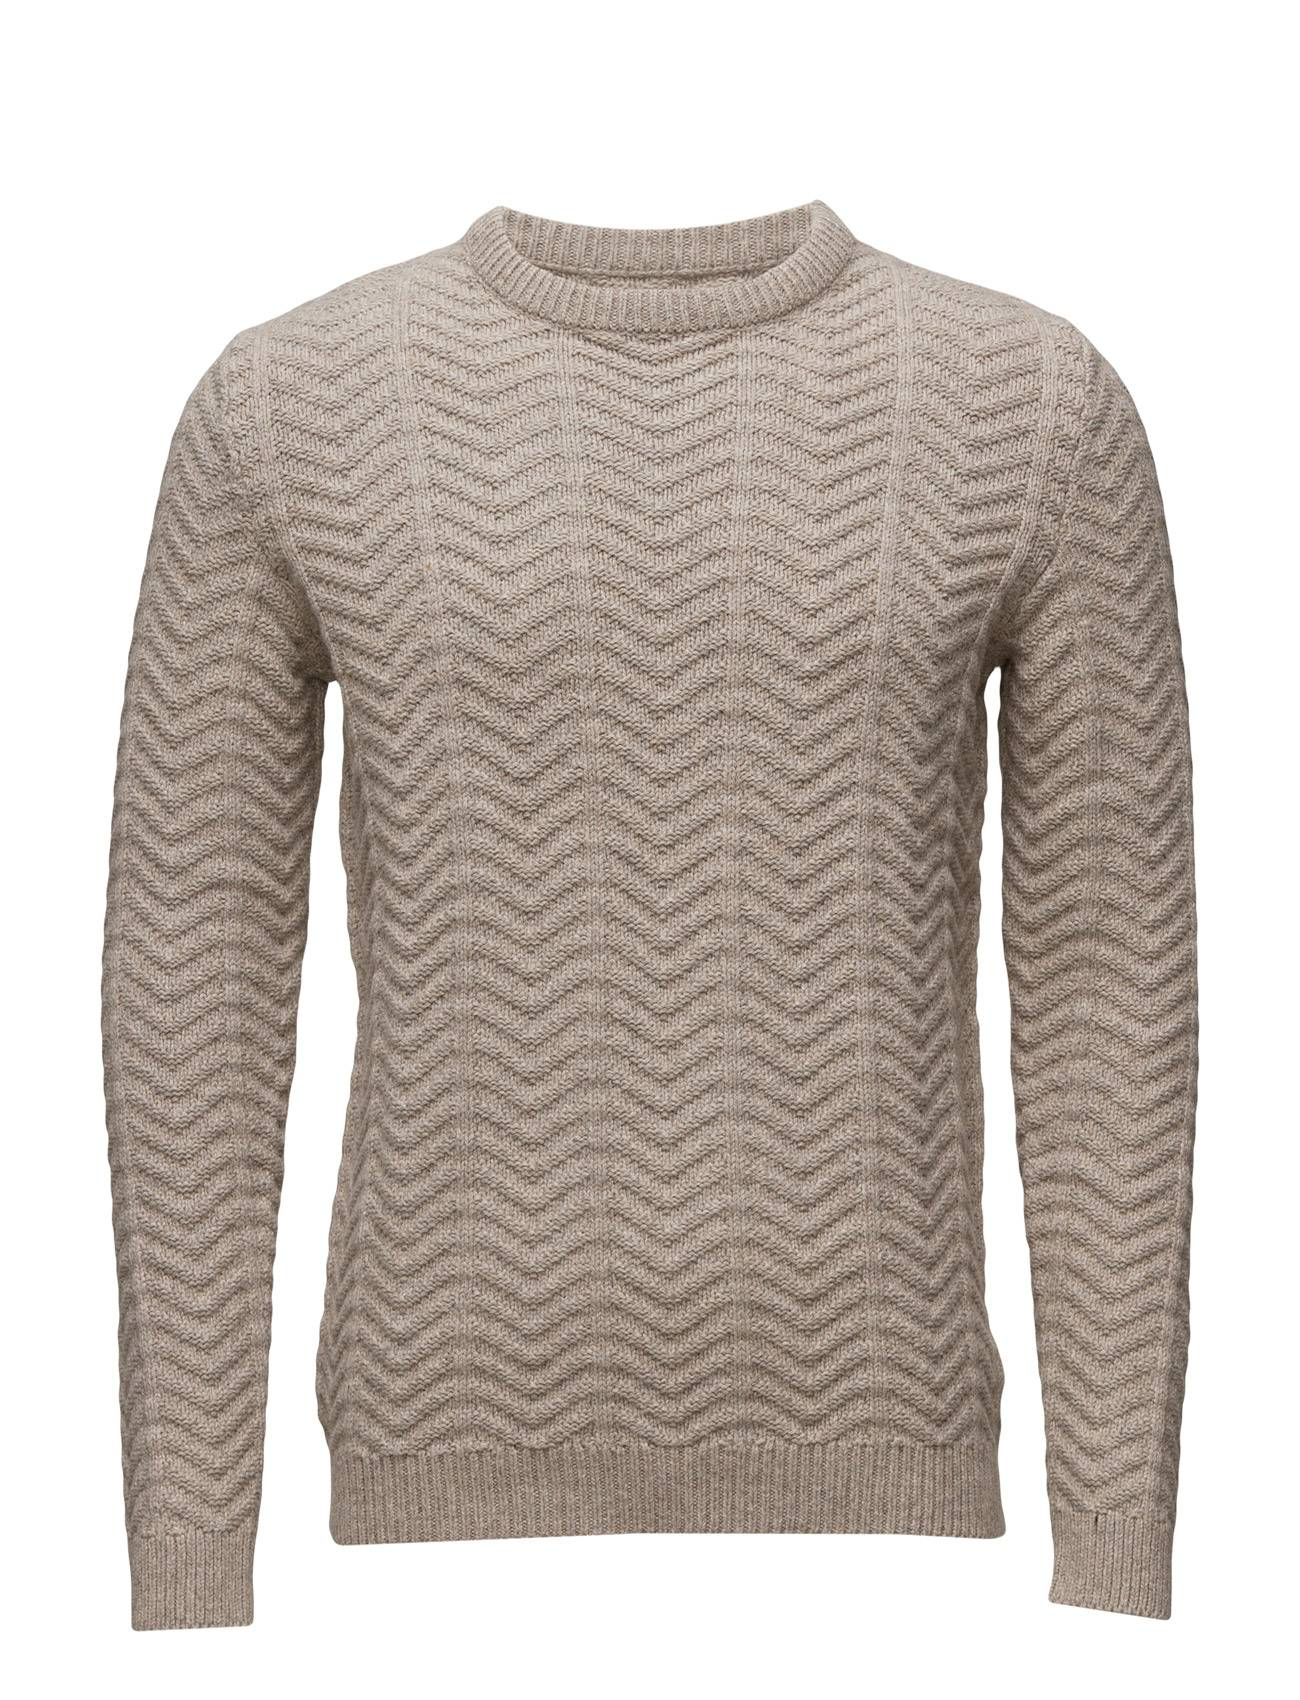 Jack & Jones Vintage Jjvgranard Knit Crew Neck